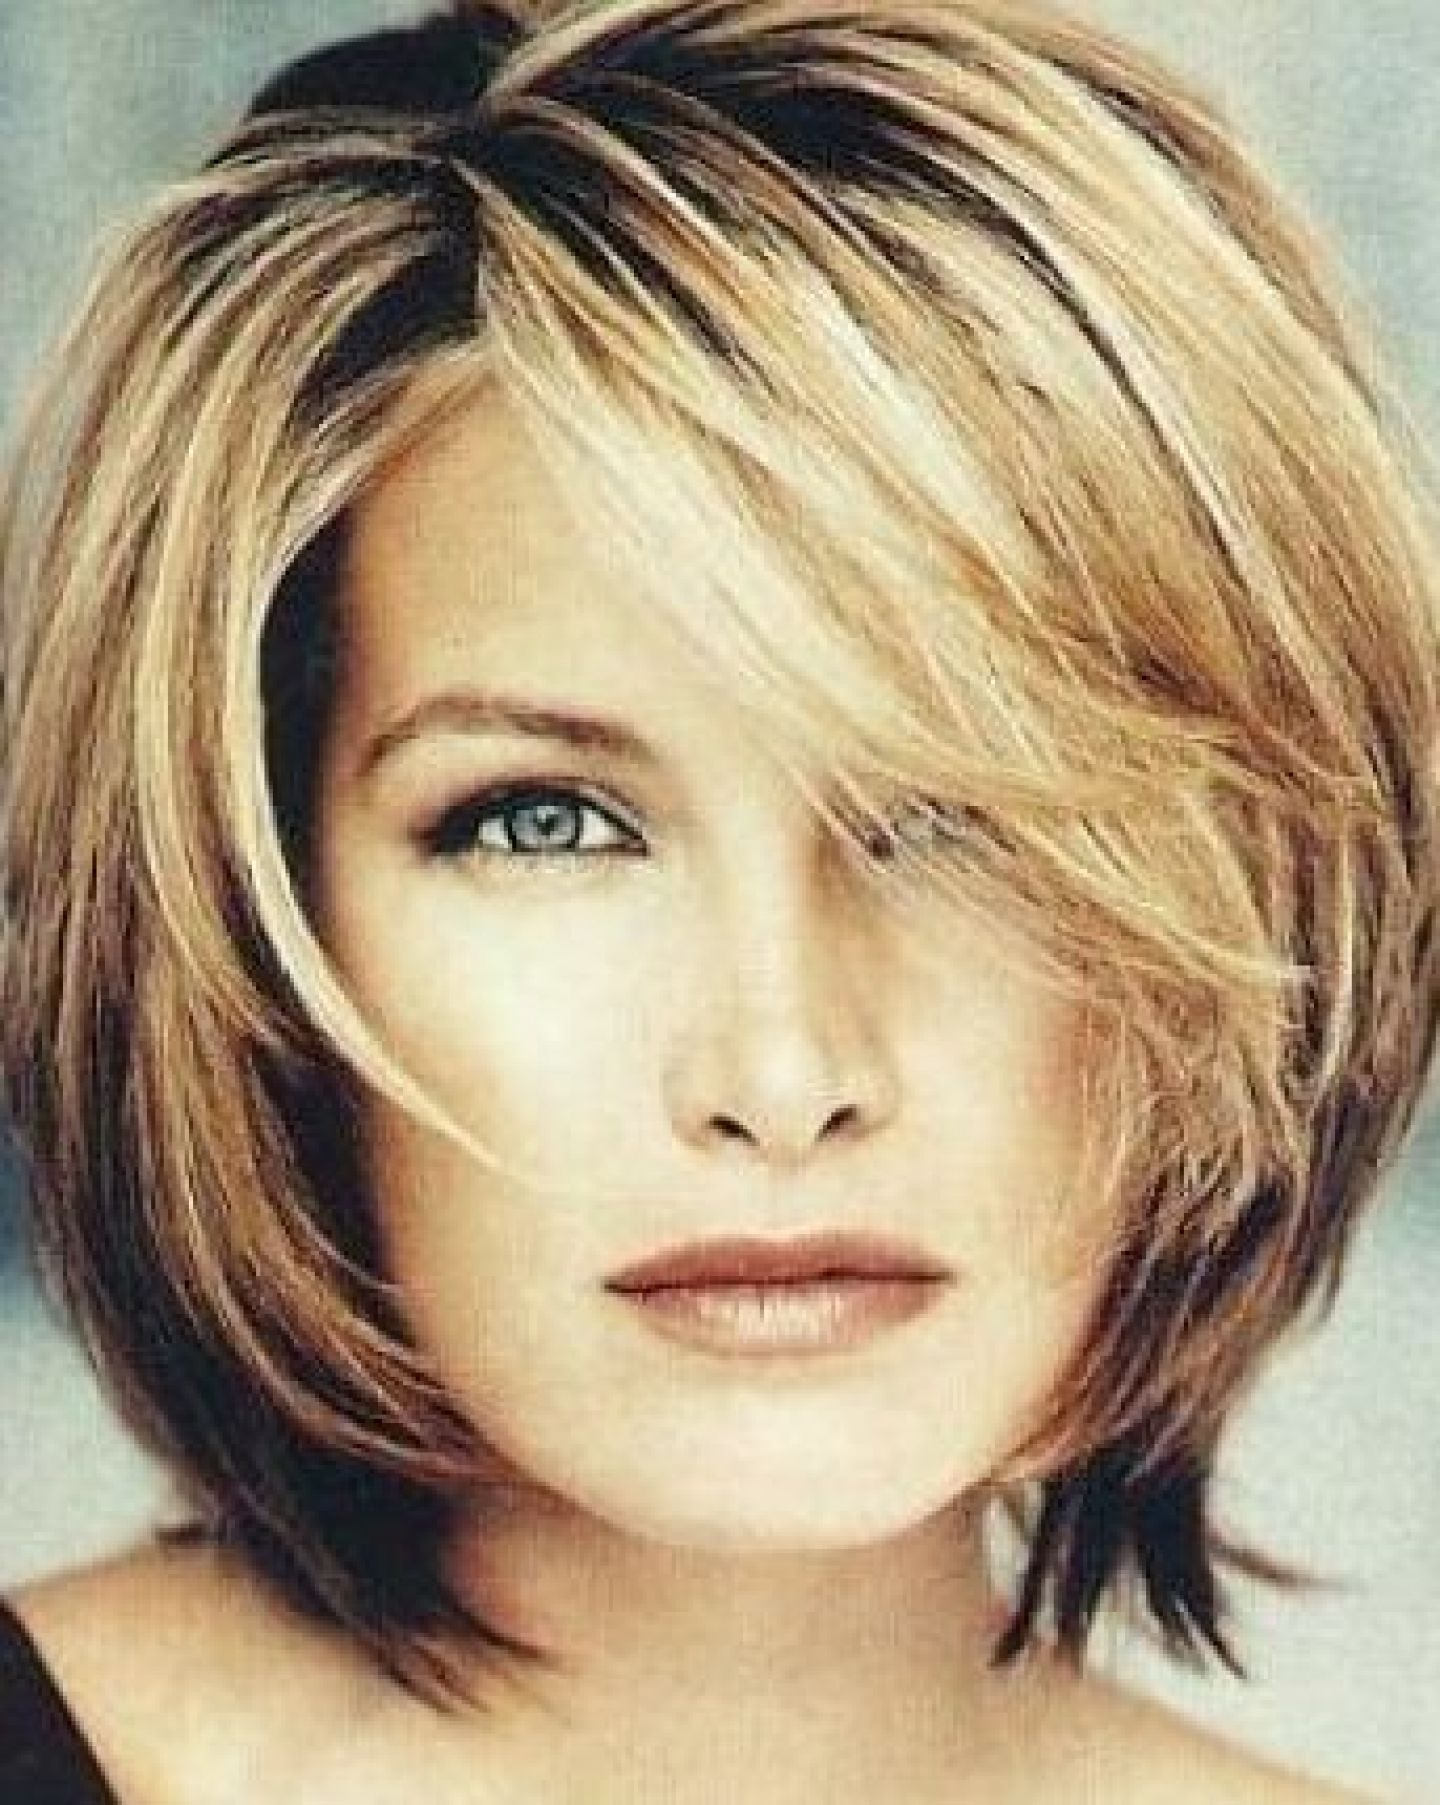 hairstyles for women over 50 | haircuts, hair style and feminine